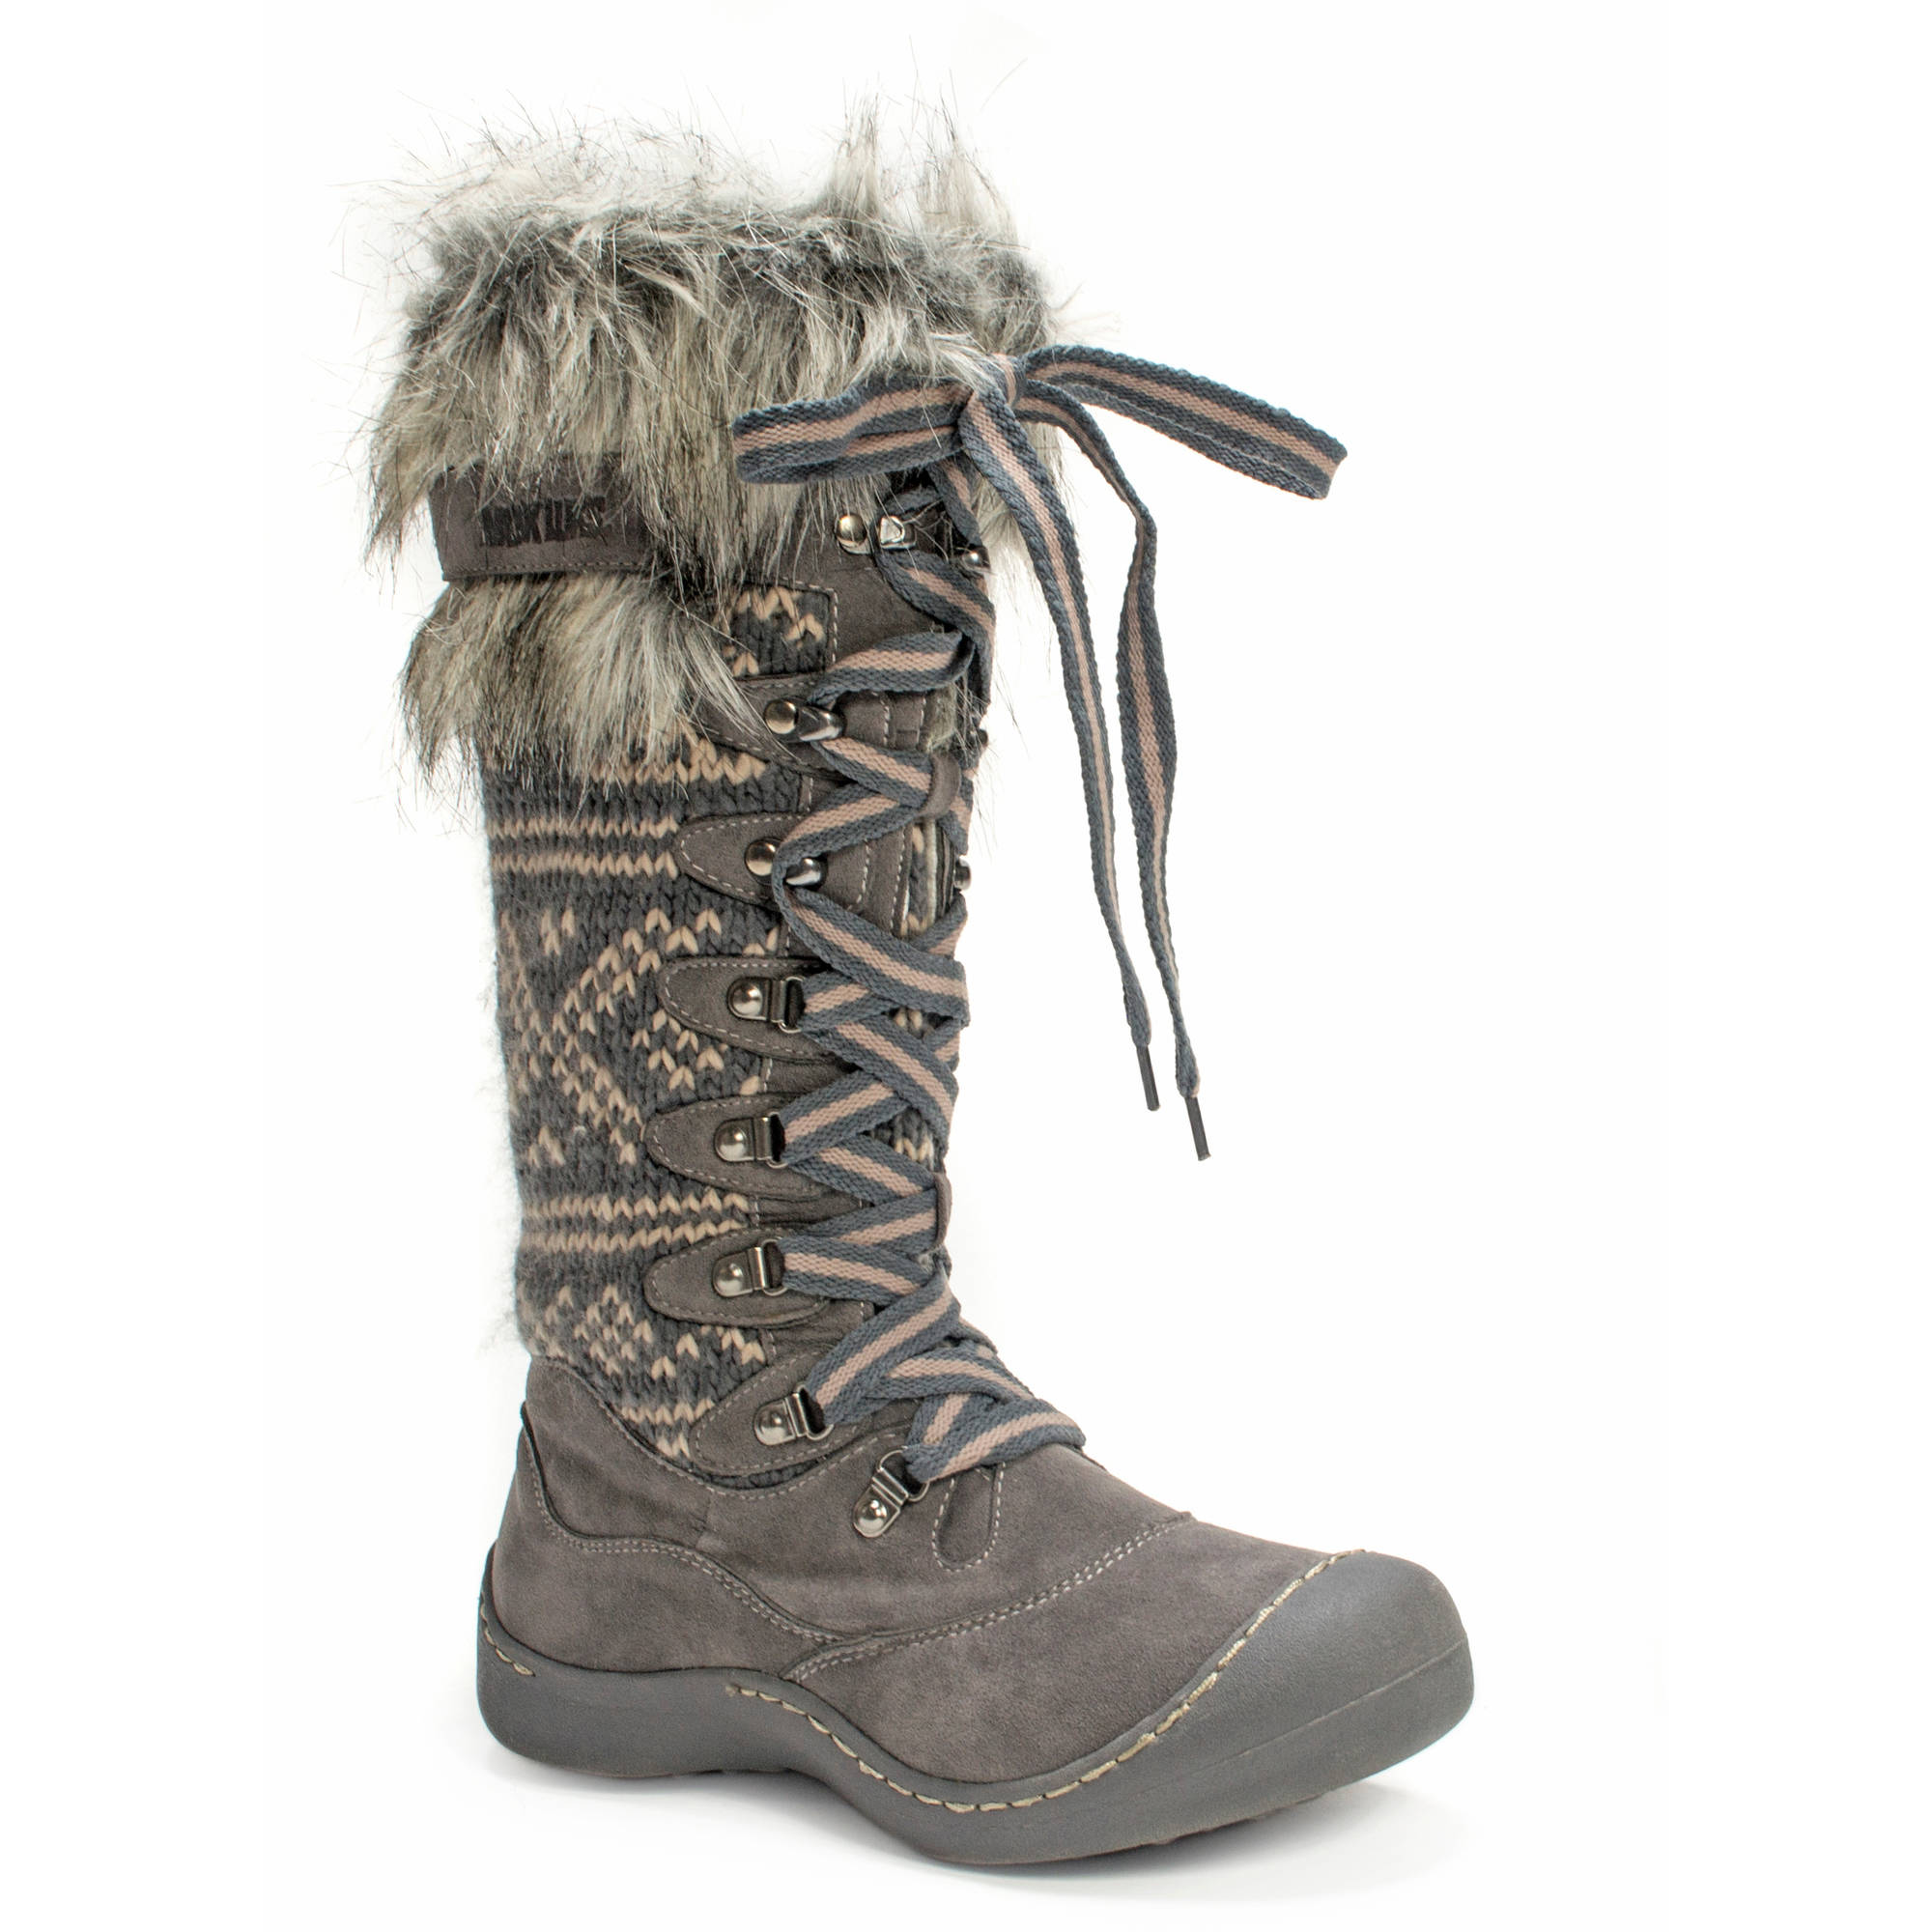 MUK LUKS Gwen Tall Lace Up Snow Boot - Walmart.com